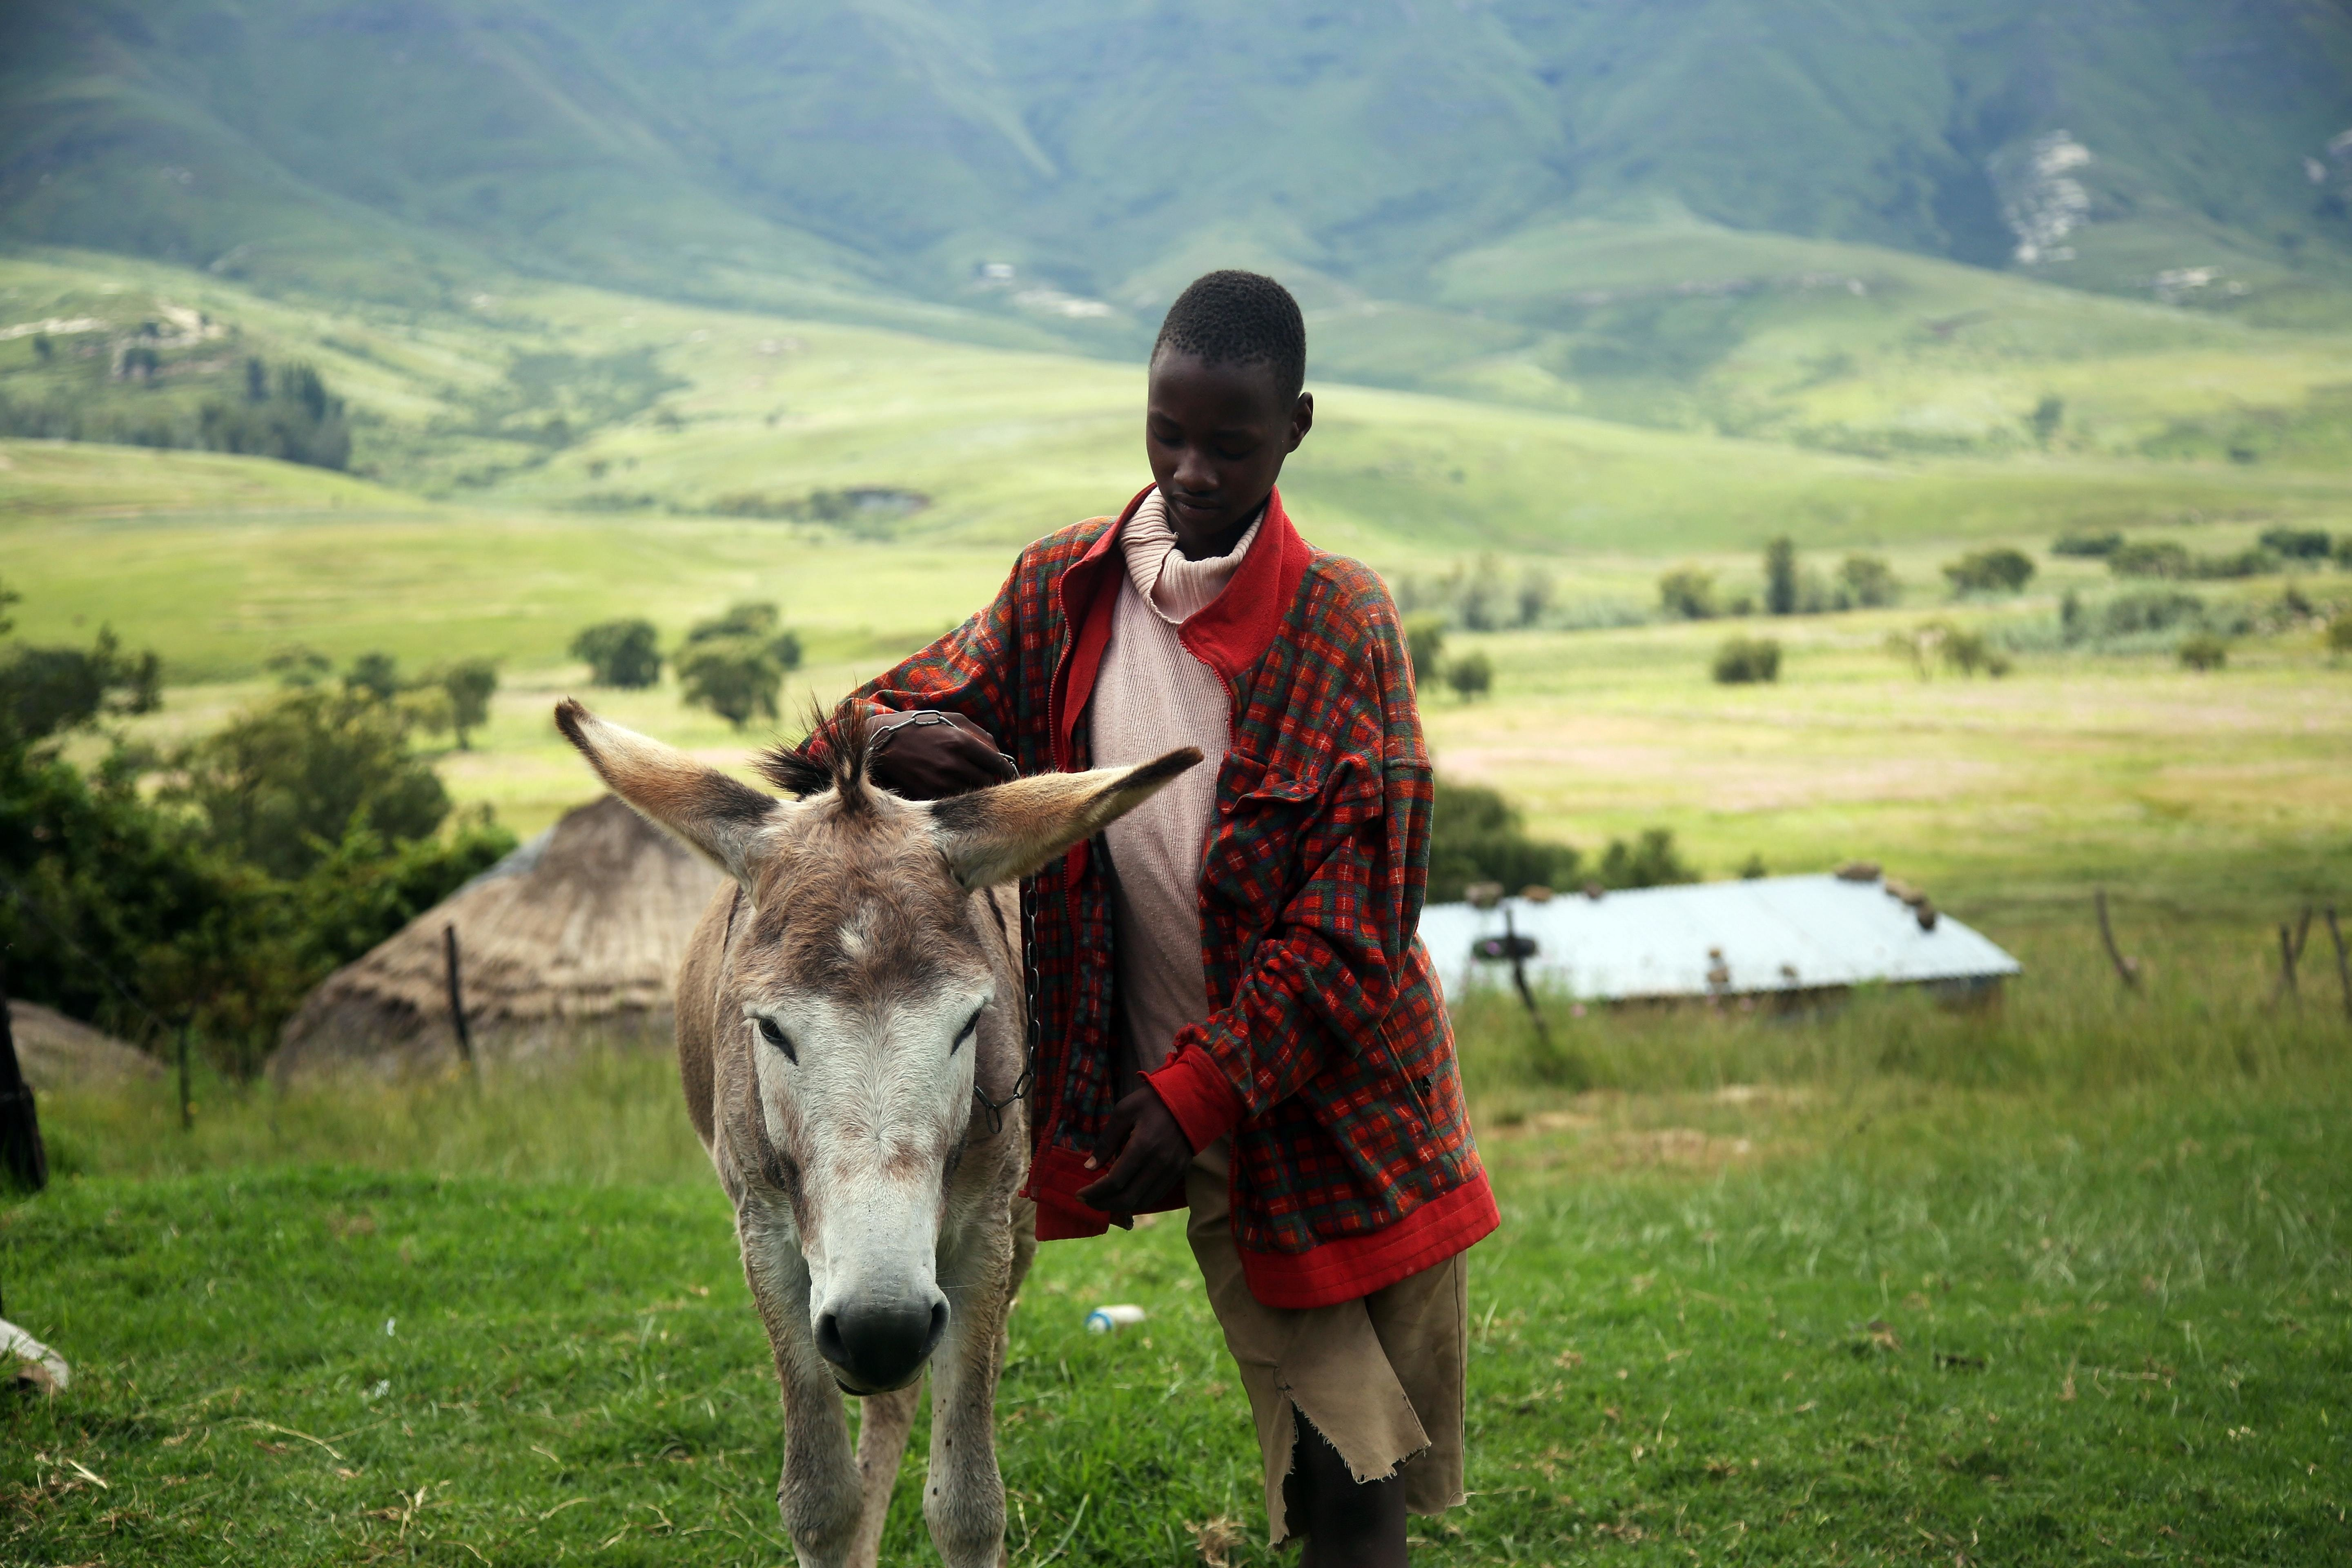 Farmers in South Africa, like this one here with a donkey, need more urgent agricultural support due to climate change.